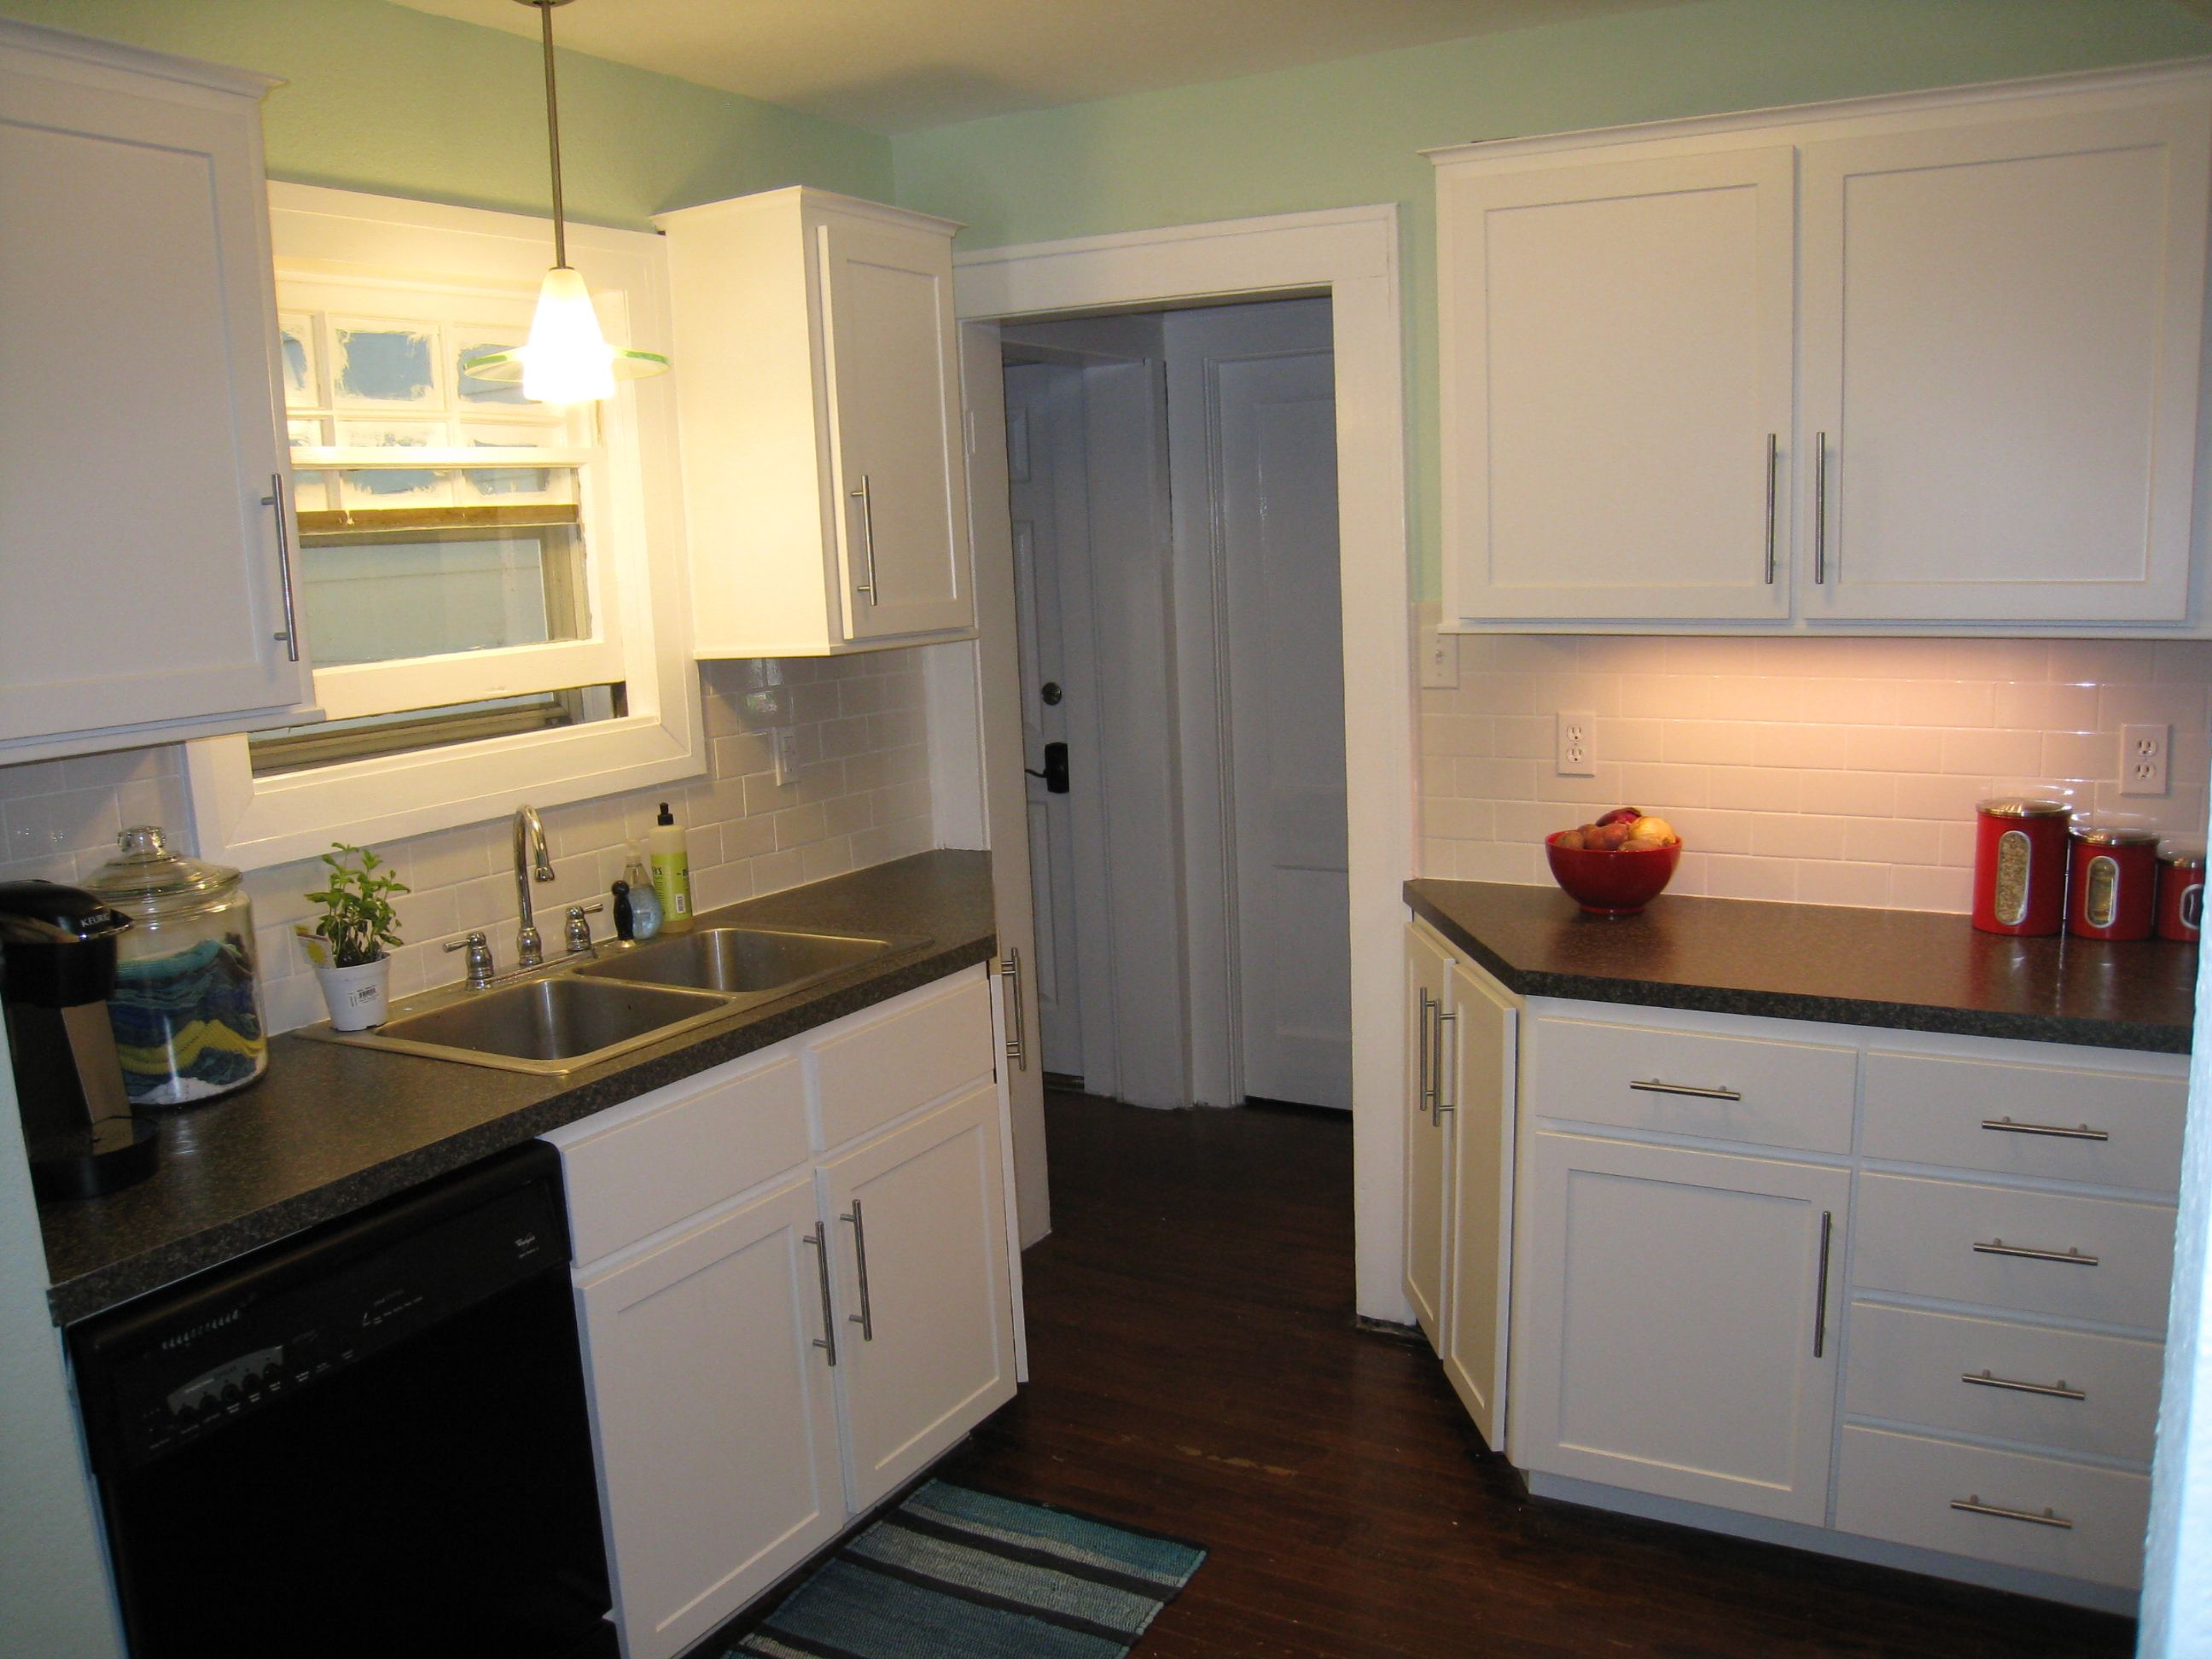 Reface Kitchen White Mission Style Doors Black Formica Tops Stainless Handles Sink Kitchen Tune Up Wichita Ks 316 Home Kitchens Kitchen Cabinet Styles